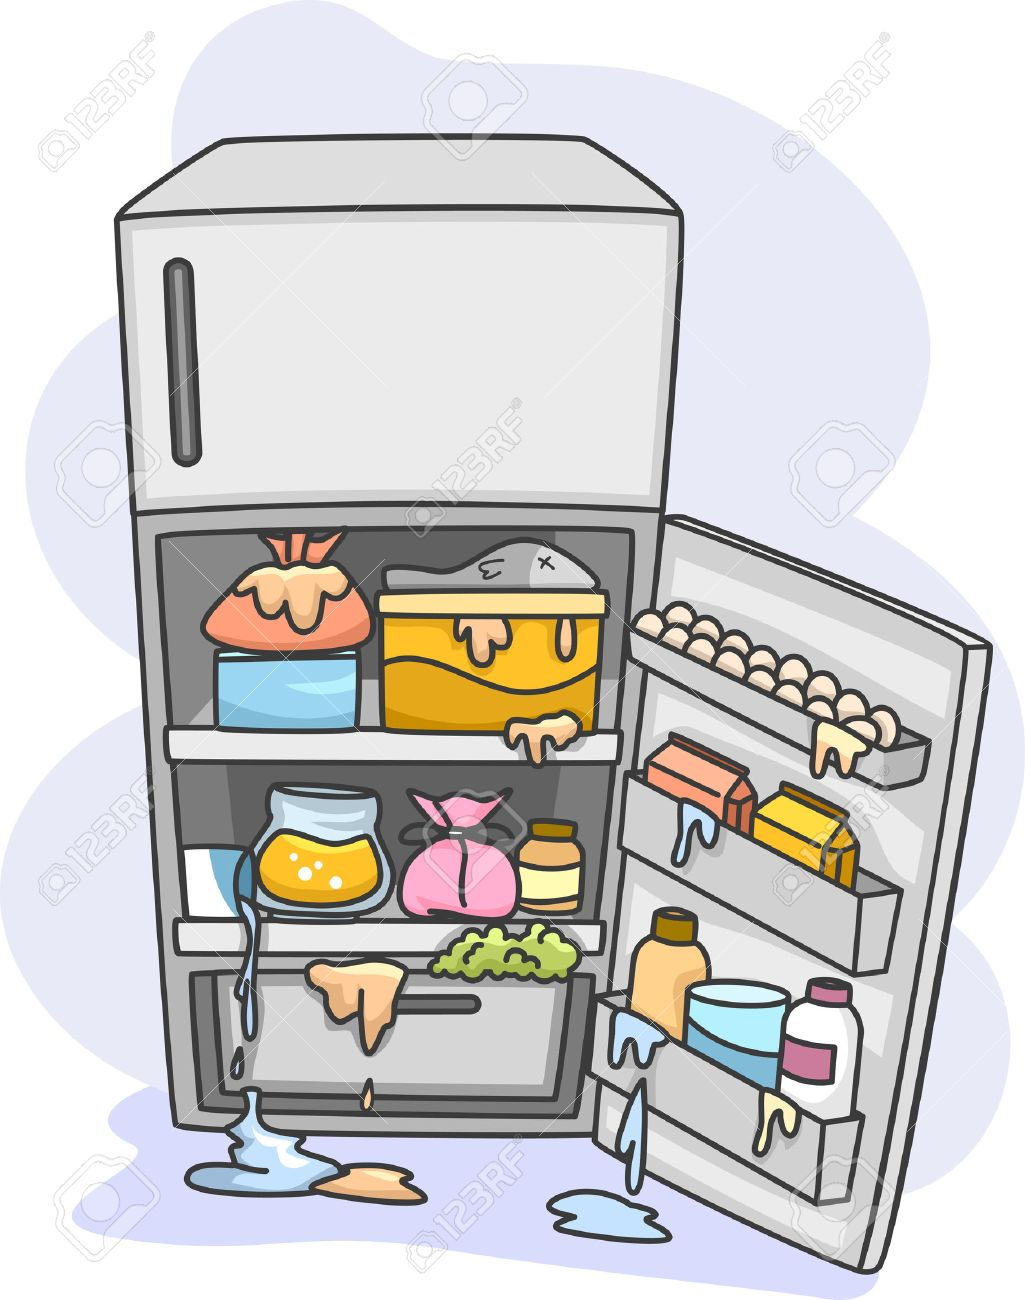 full refrigerator clipart. illustration of a messy refrigerator dripping with all sorts fluids stock 35416206 full clipart